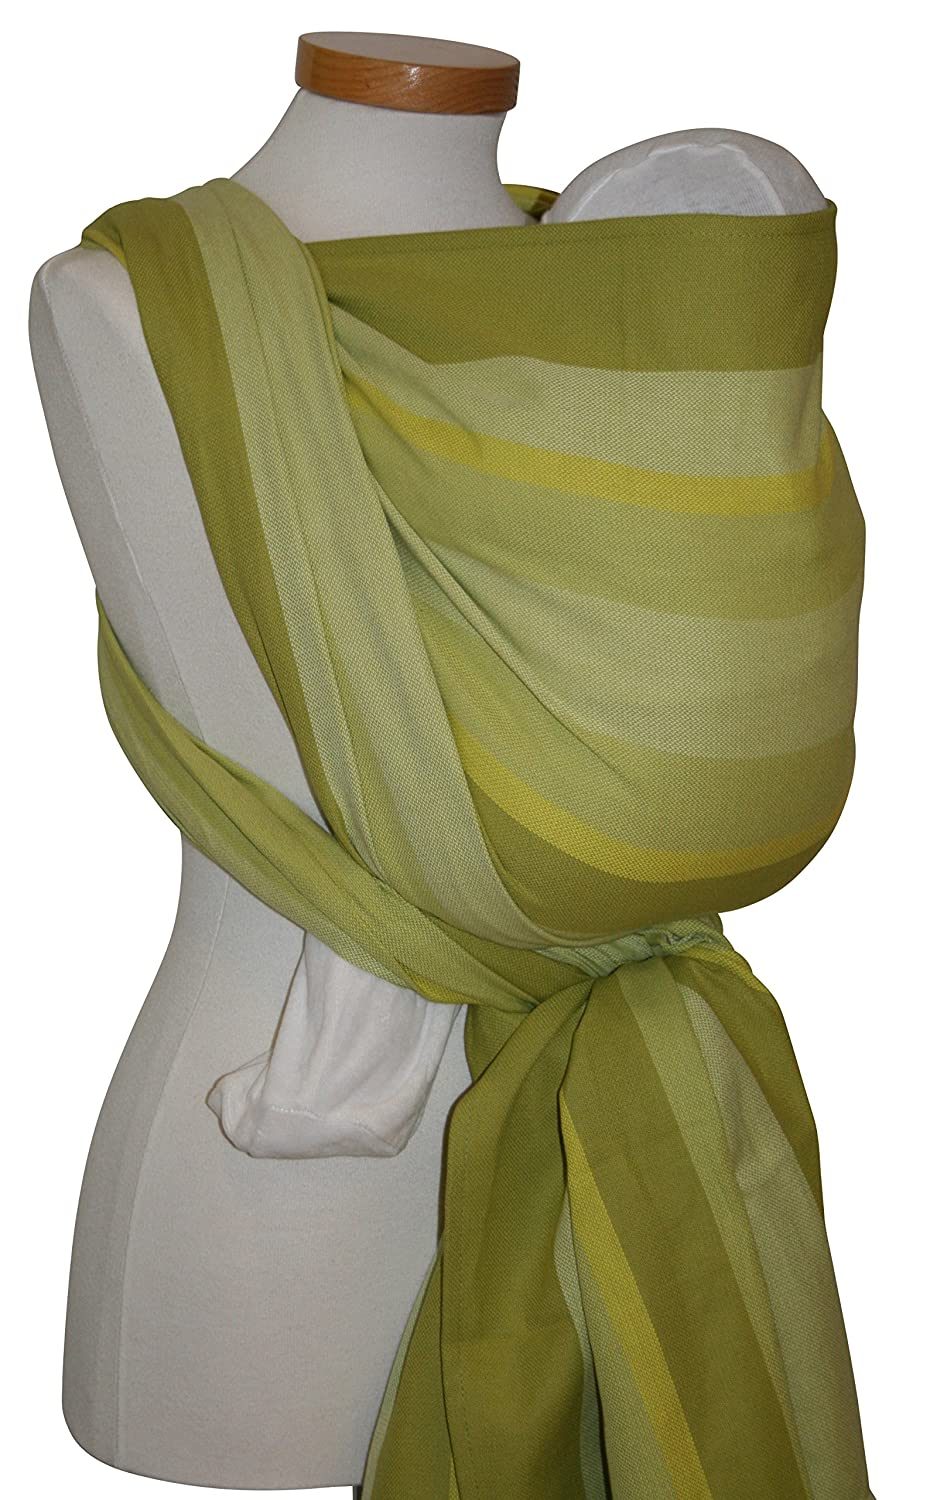 Storchenwiege Baby Wrap Organic Woven Cotton Baby Carrier From Germany 5.2, Olivia